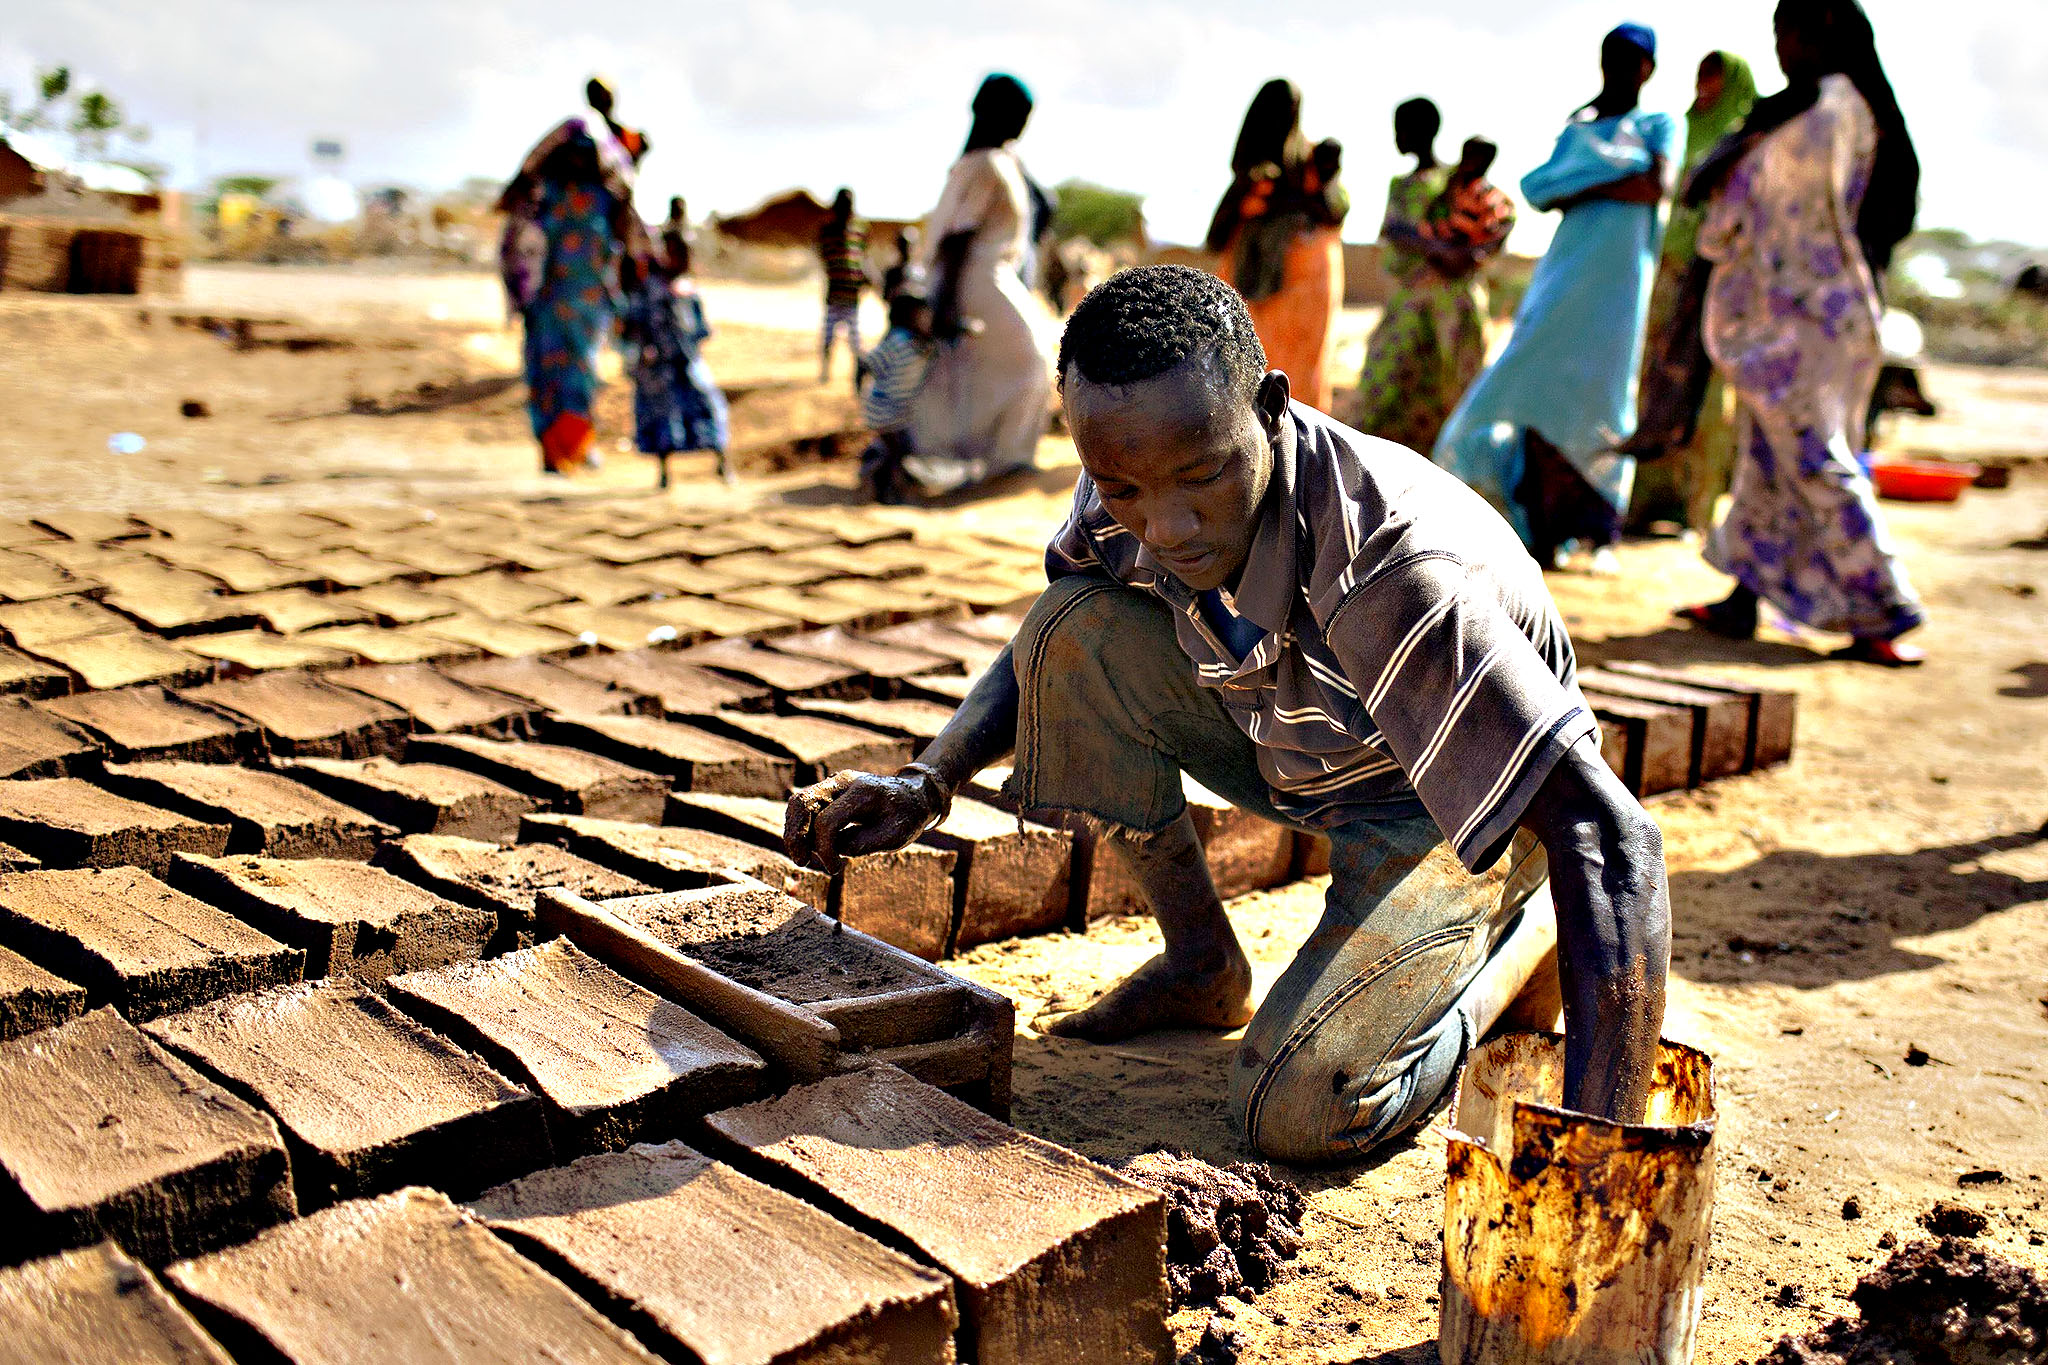 A man makes construction bricks from mud at one of several refugee settlements in Dadaab, Garissa County, northeastern Kenya.